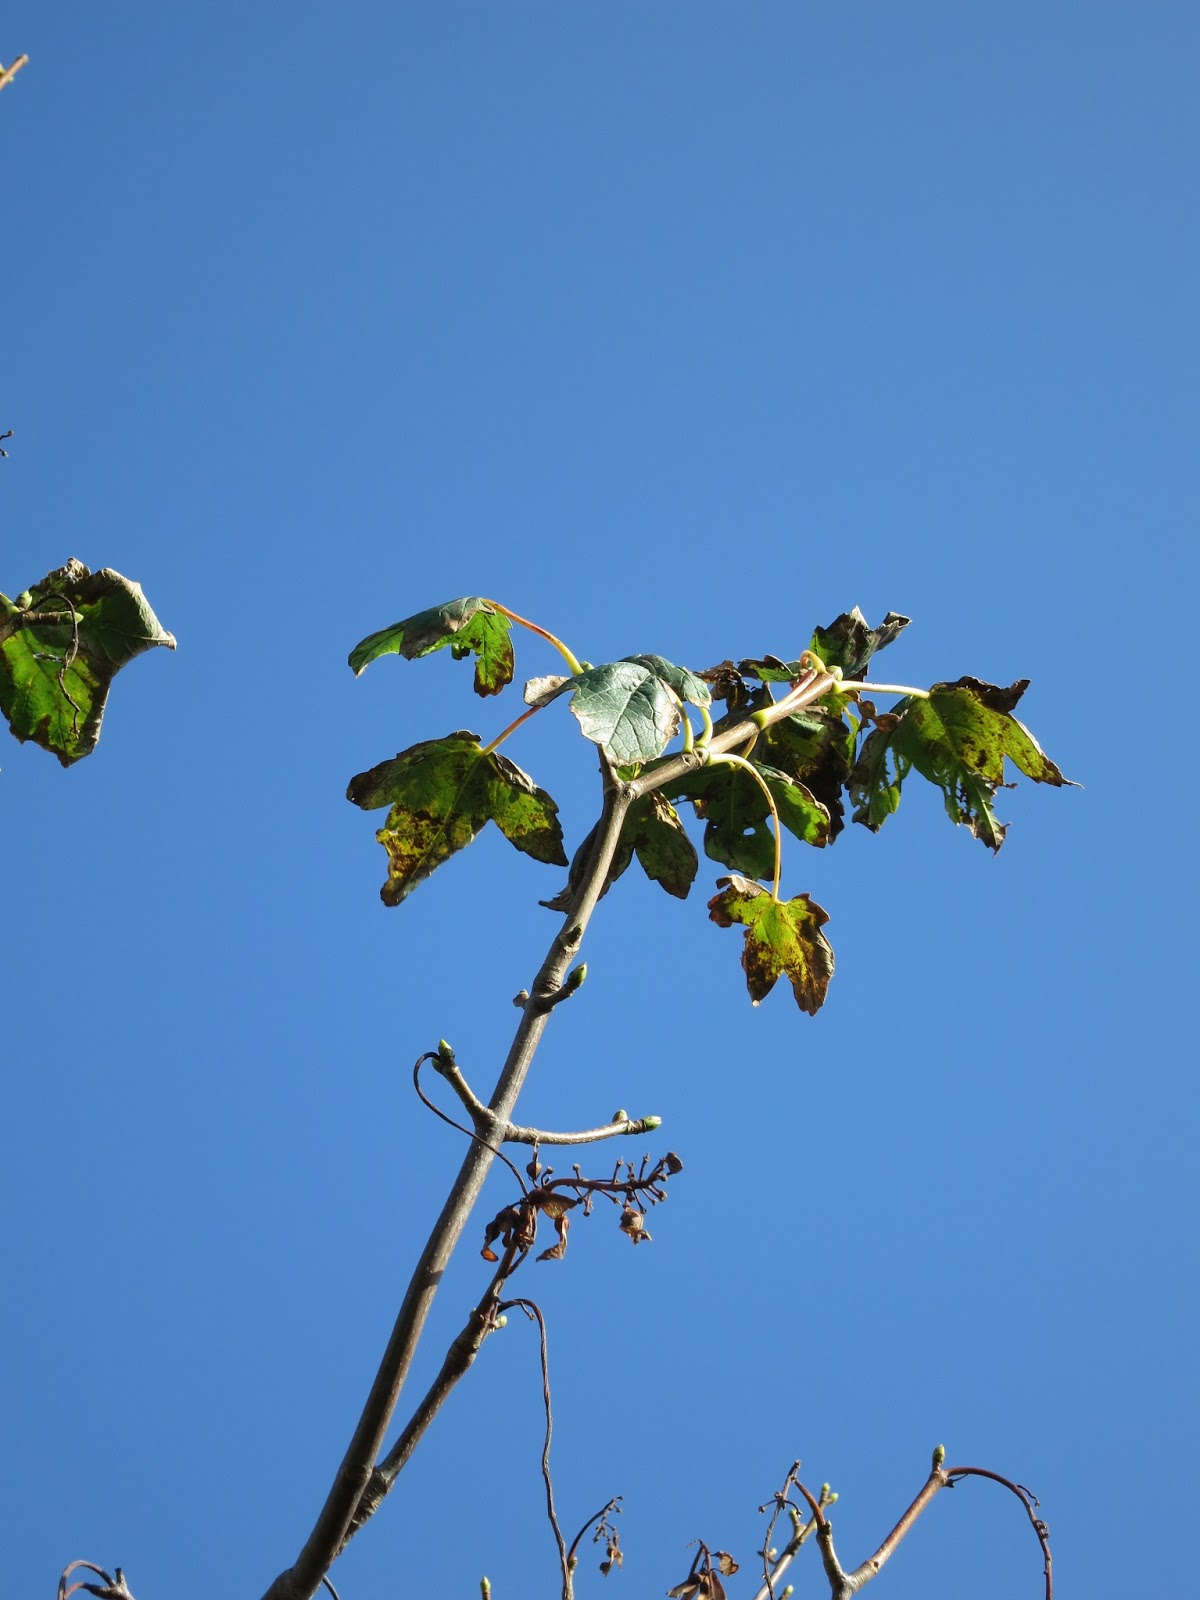 Sycamore (?) leaves dying against a blue autumn sky.